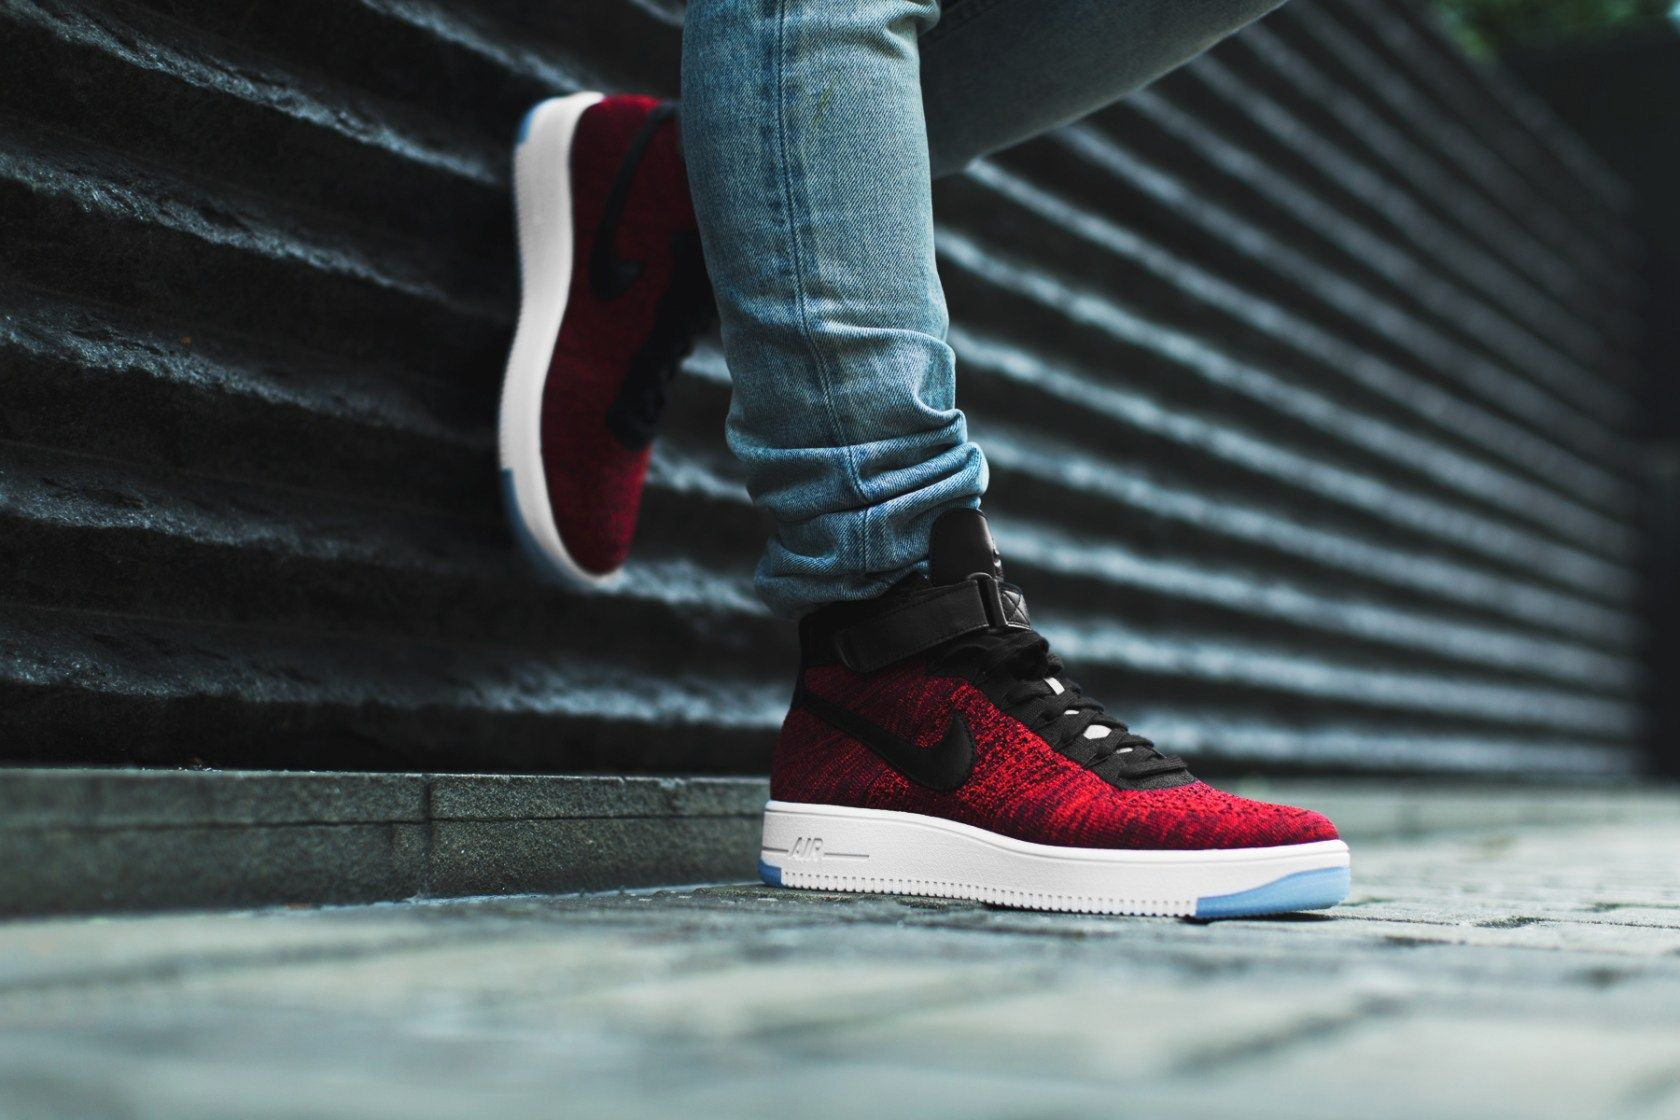 An On Feet Look At The Nike Air Force 1 Ultra Flyknit Red